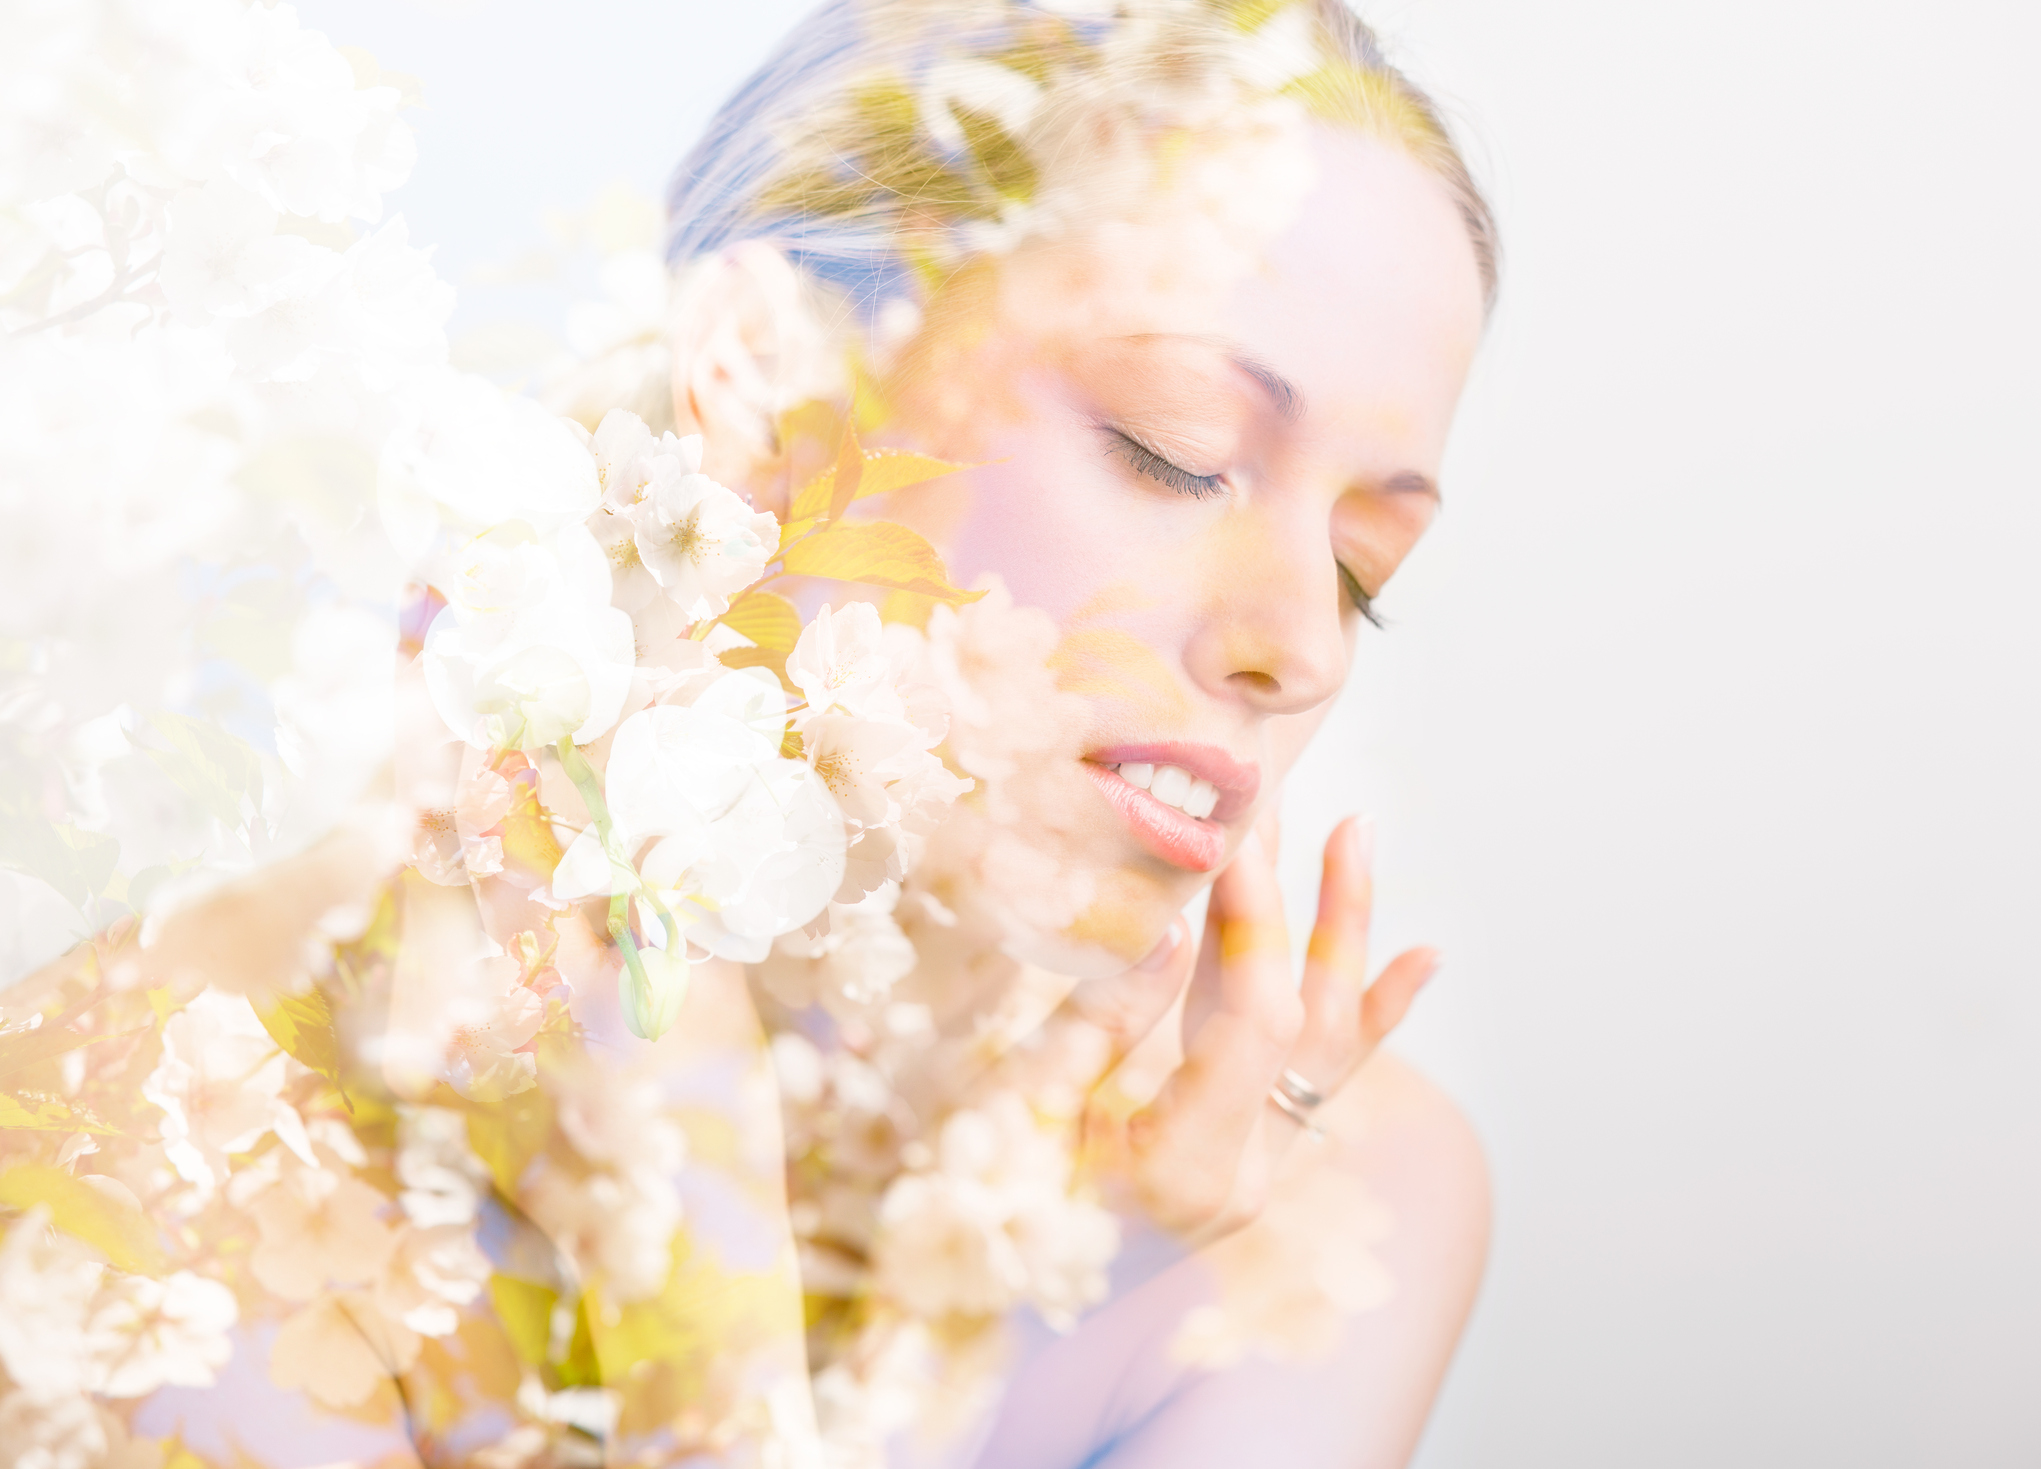 Double exposure photo of beautiful woman's face and flowers